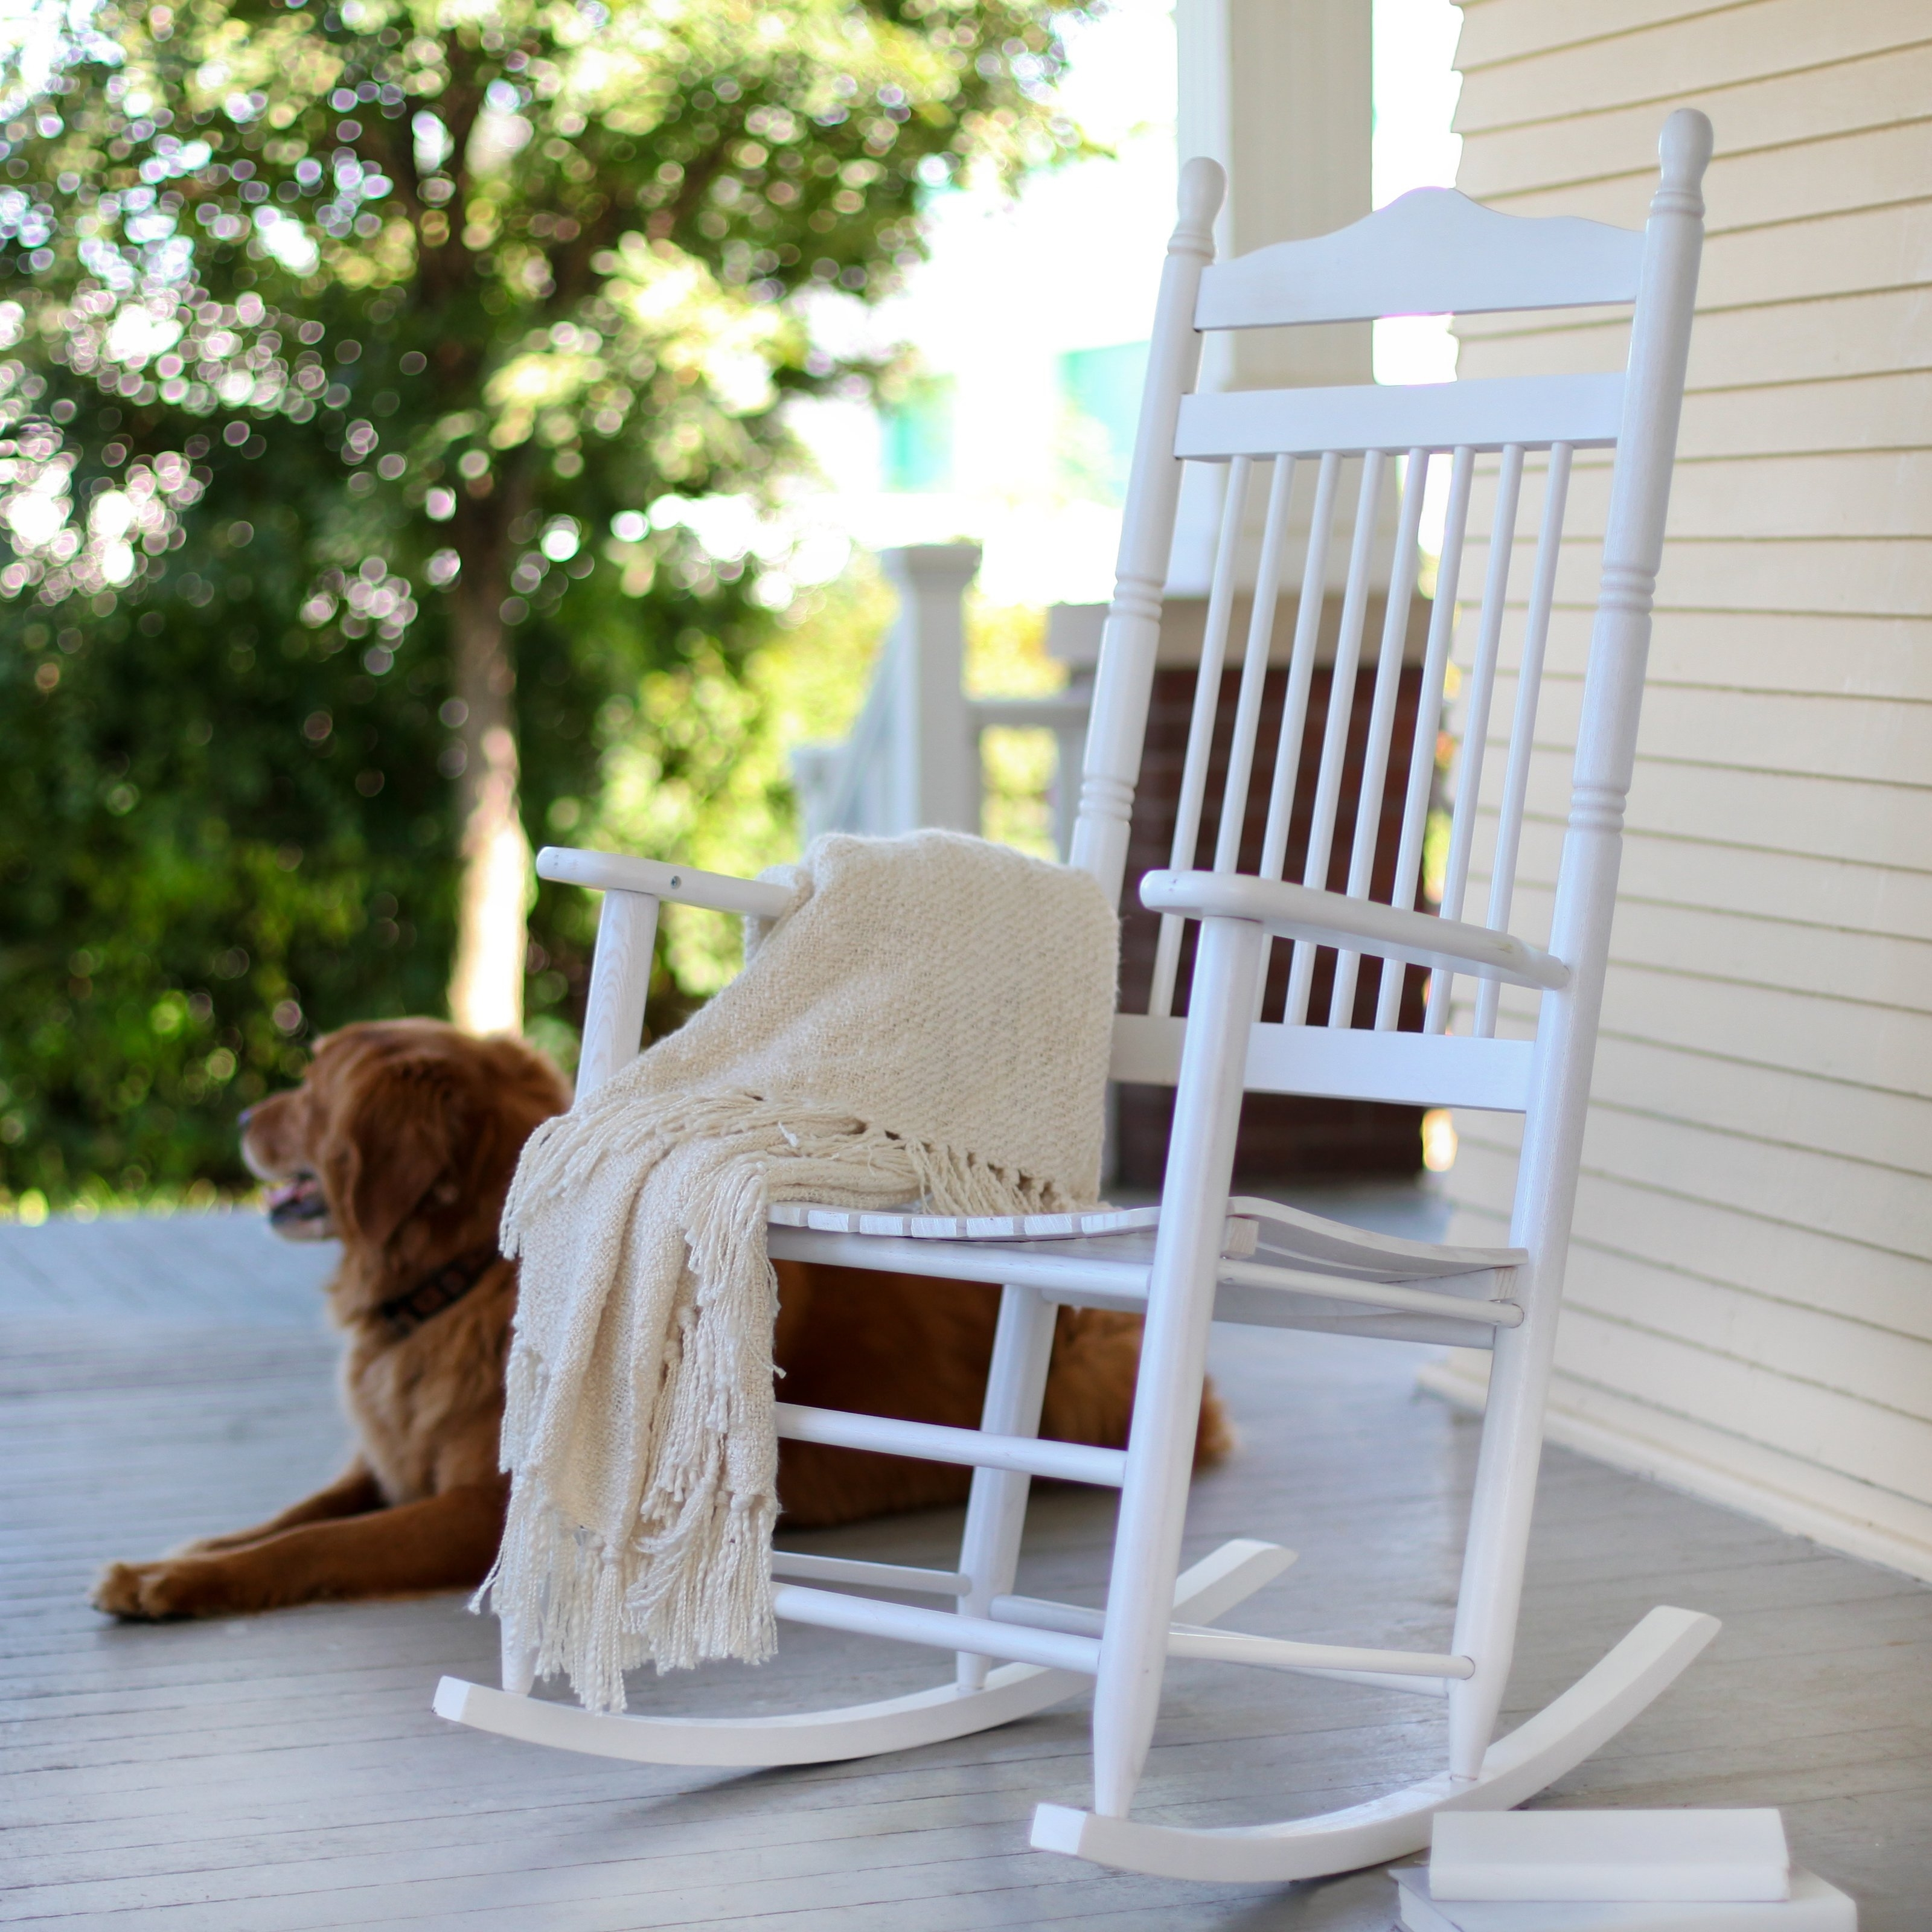 Favorite Excellent Porch Rocking Chair For Small Home Remodel Ideas With Intended For Small Patio Rocking Chairs (View 9 of 15)